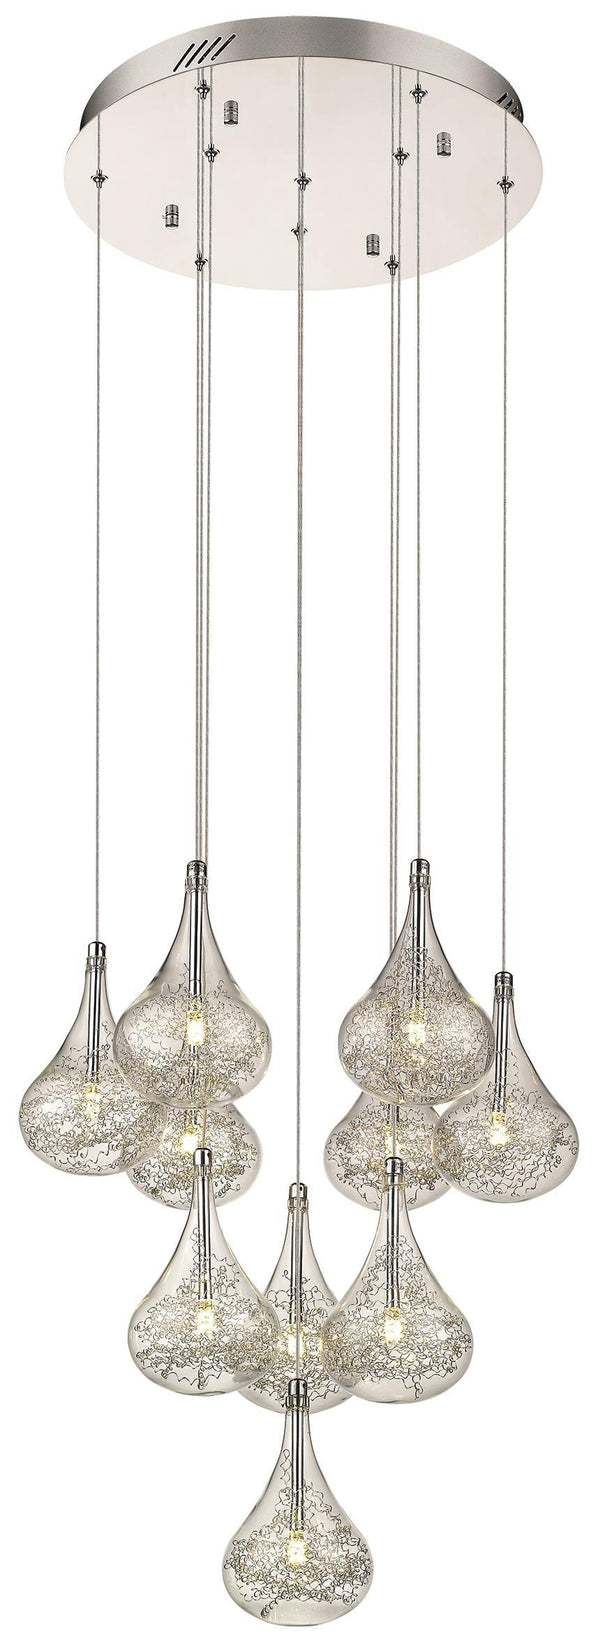 SND Lighting SND118 Beta 10 Light Multi Light Pendant - SND Electrical Ltd